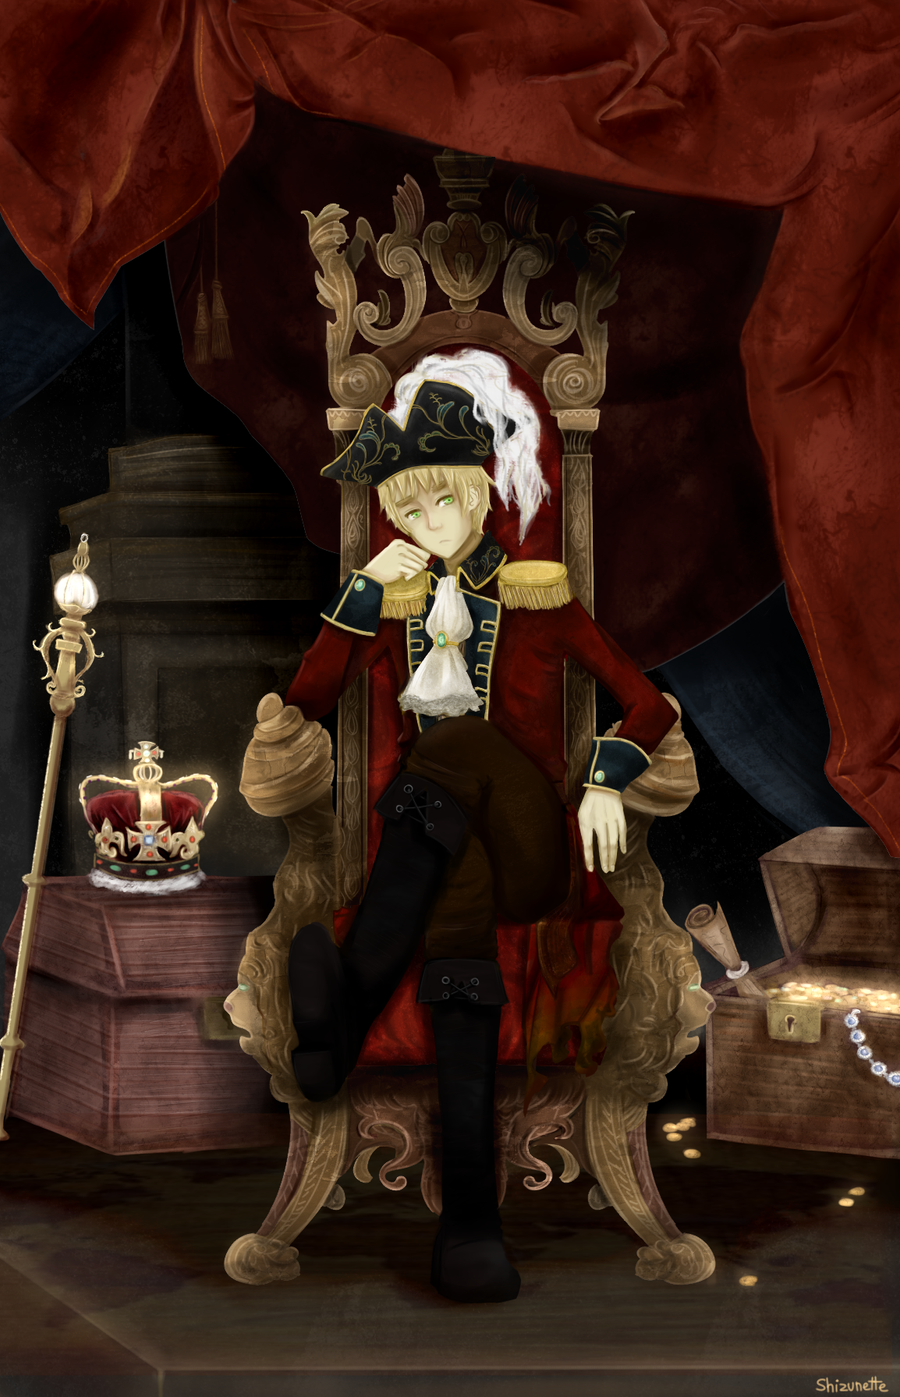 Hetalia - Pirate!England for Riza by Shizunette